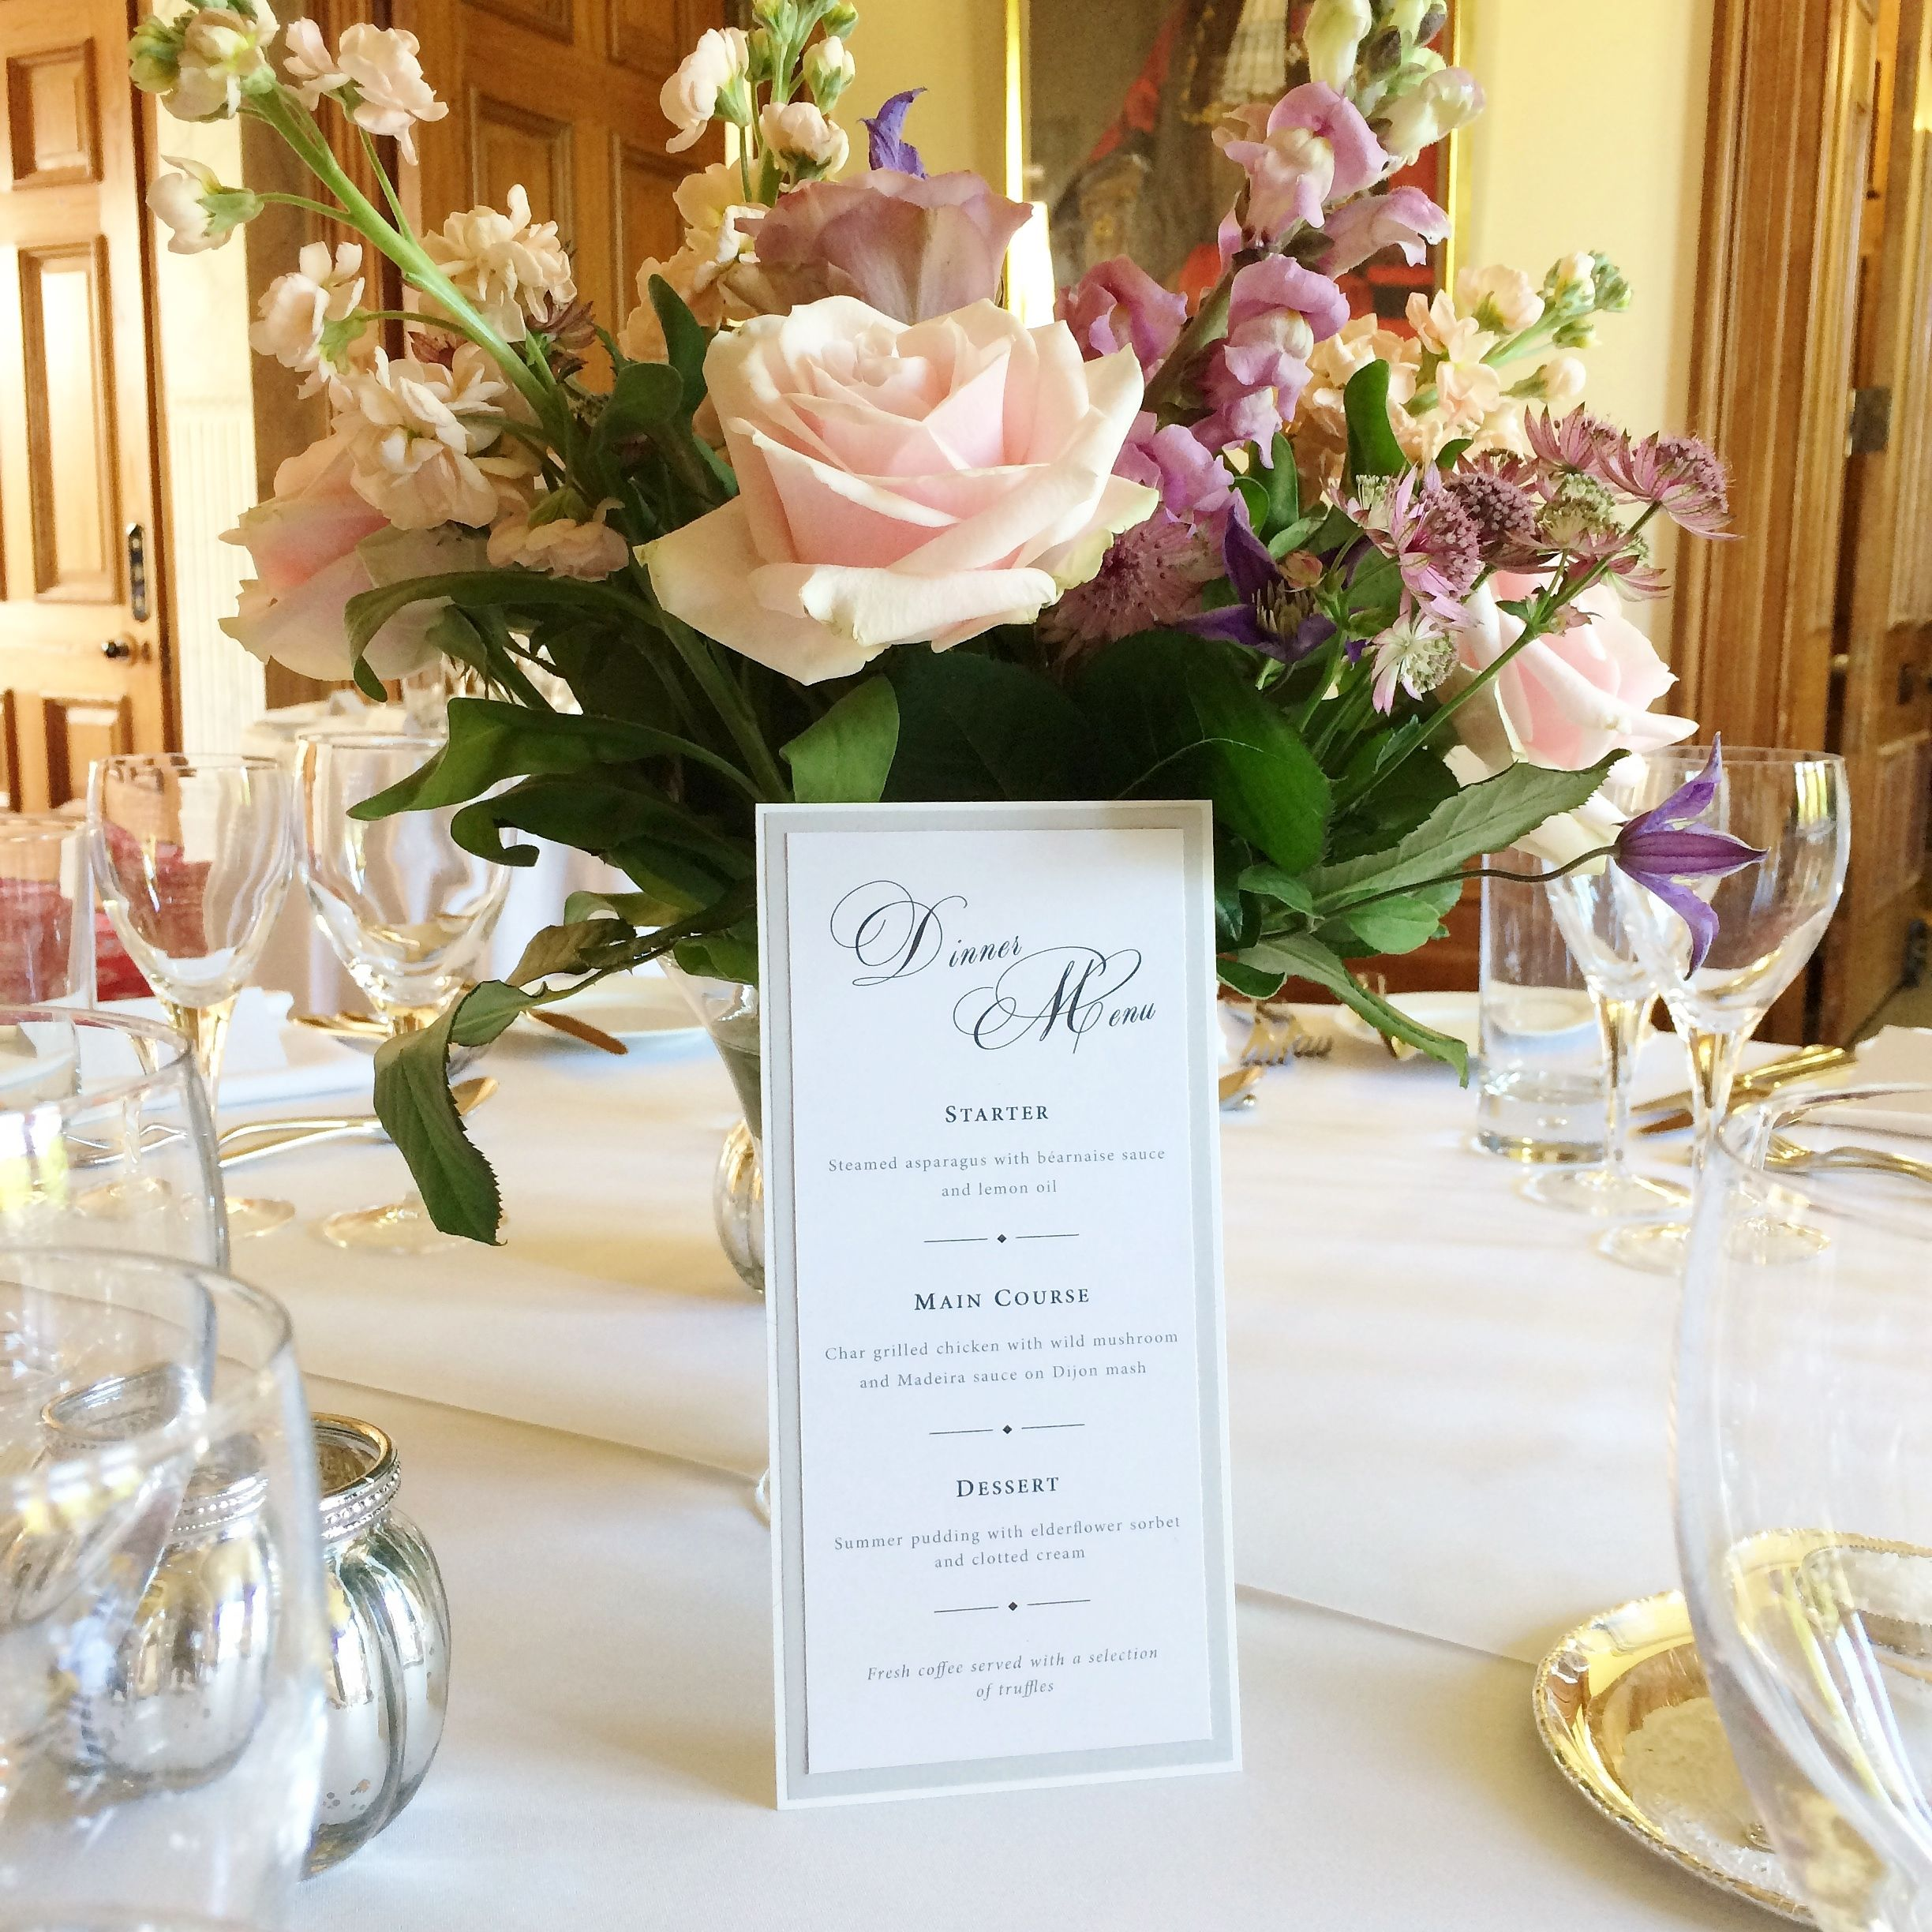 Wedding anniversary decoration ideas at home  Wedding table styling details menu  The Mansion House Bristol